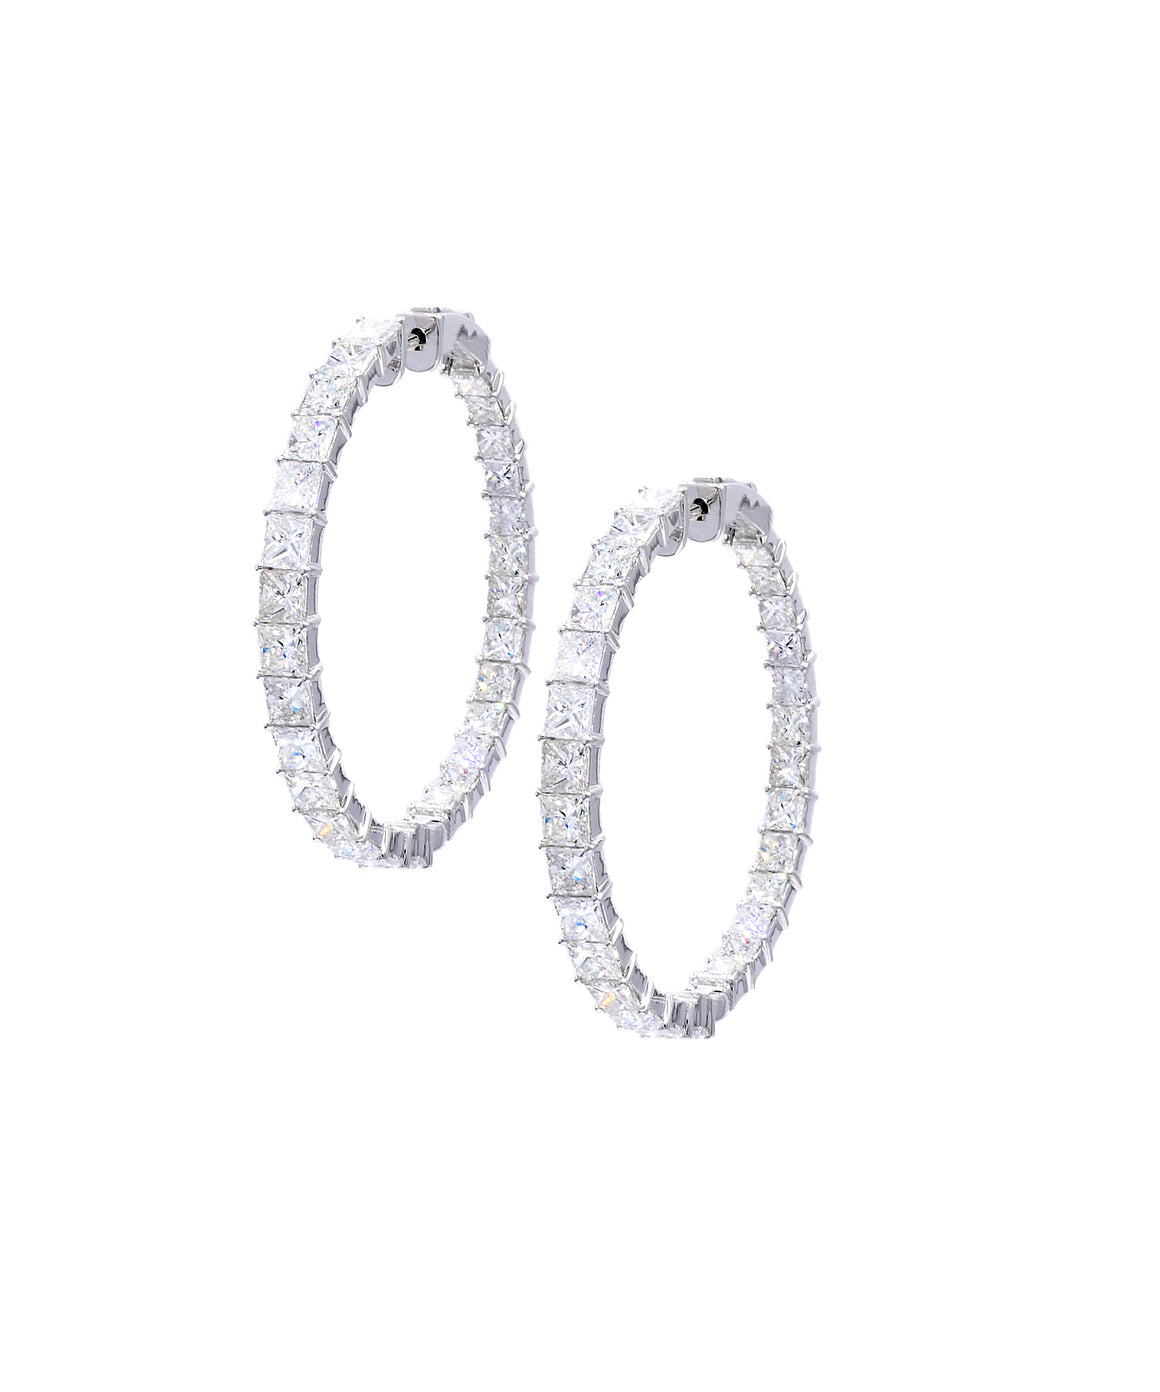 Princess Cut Diamond Hoop Earrings - Lesley Ann Jewels